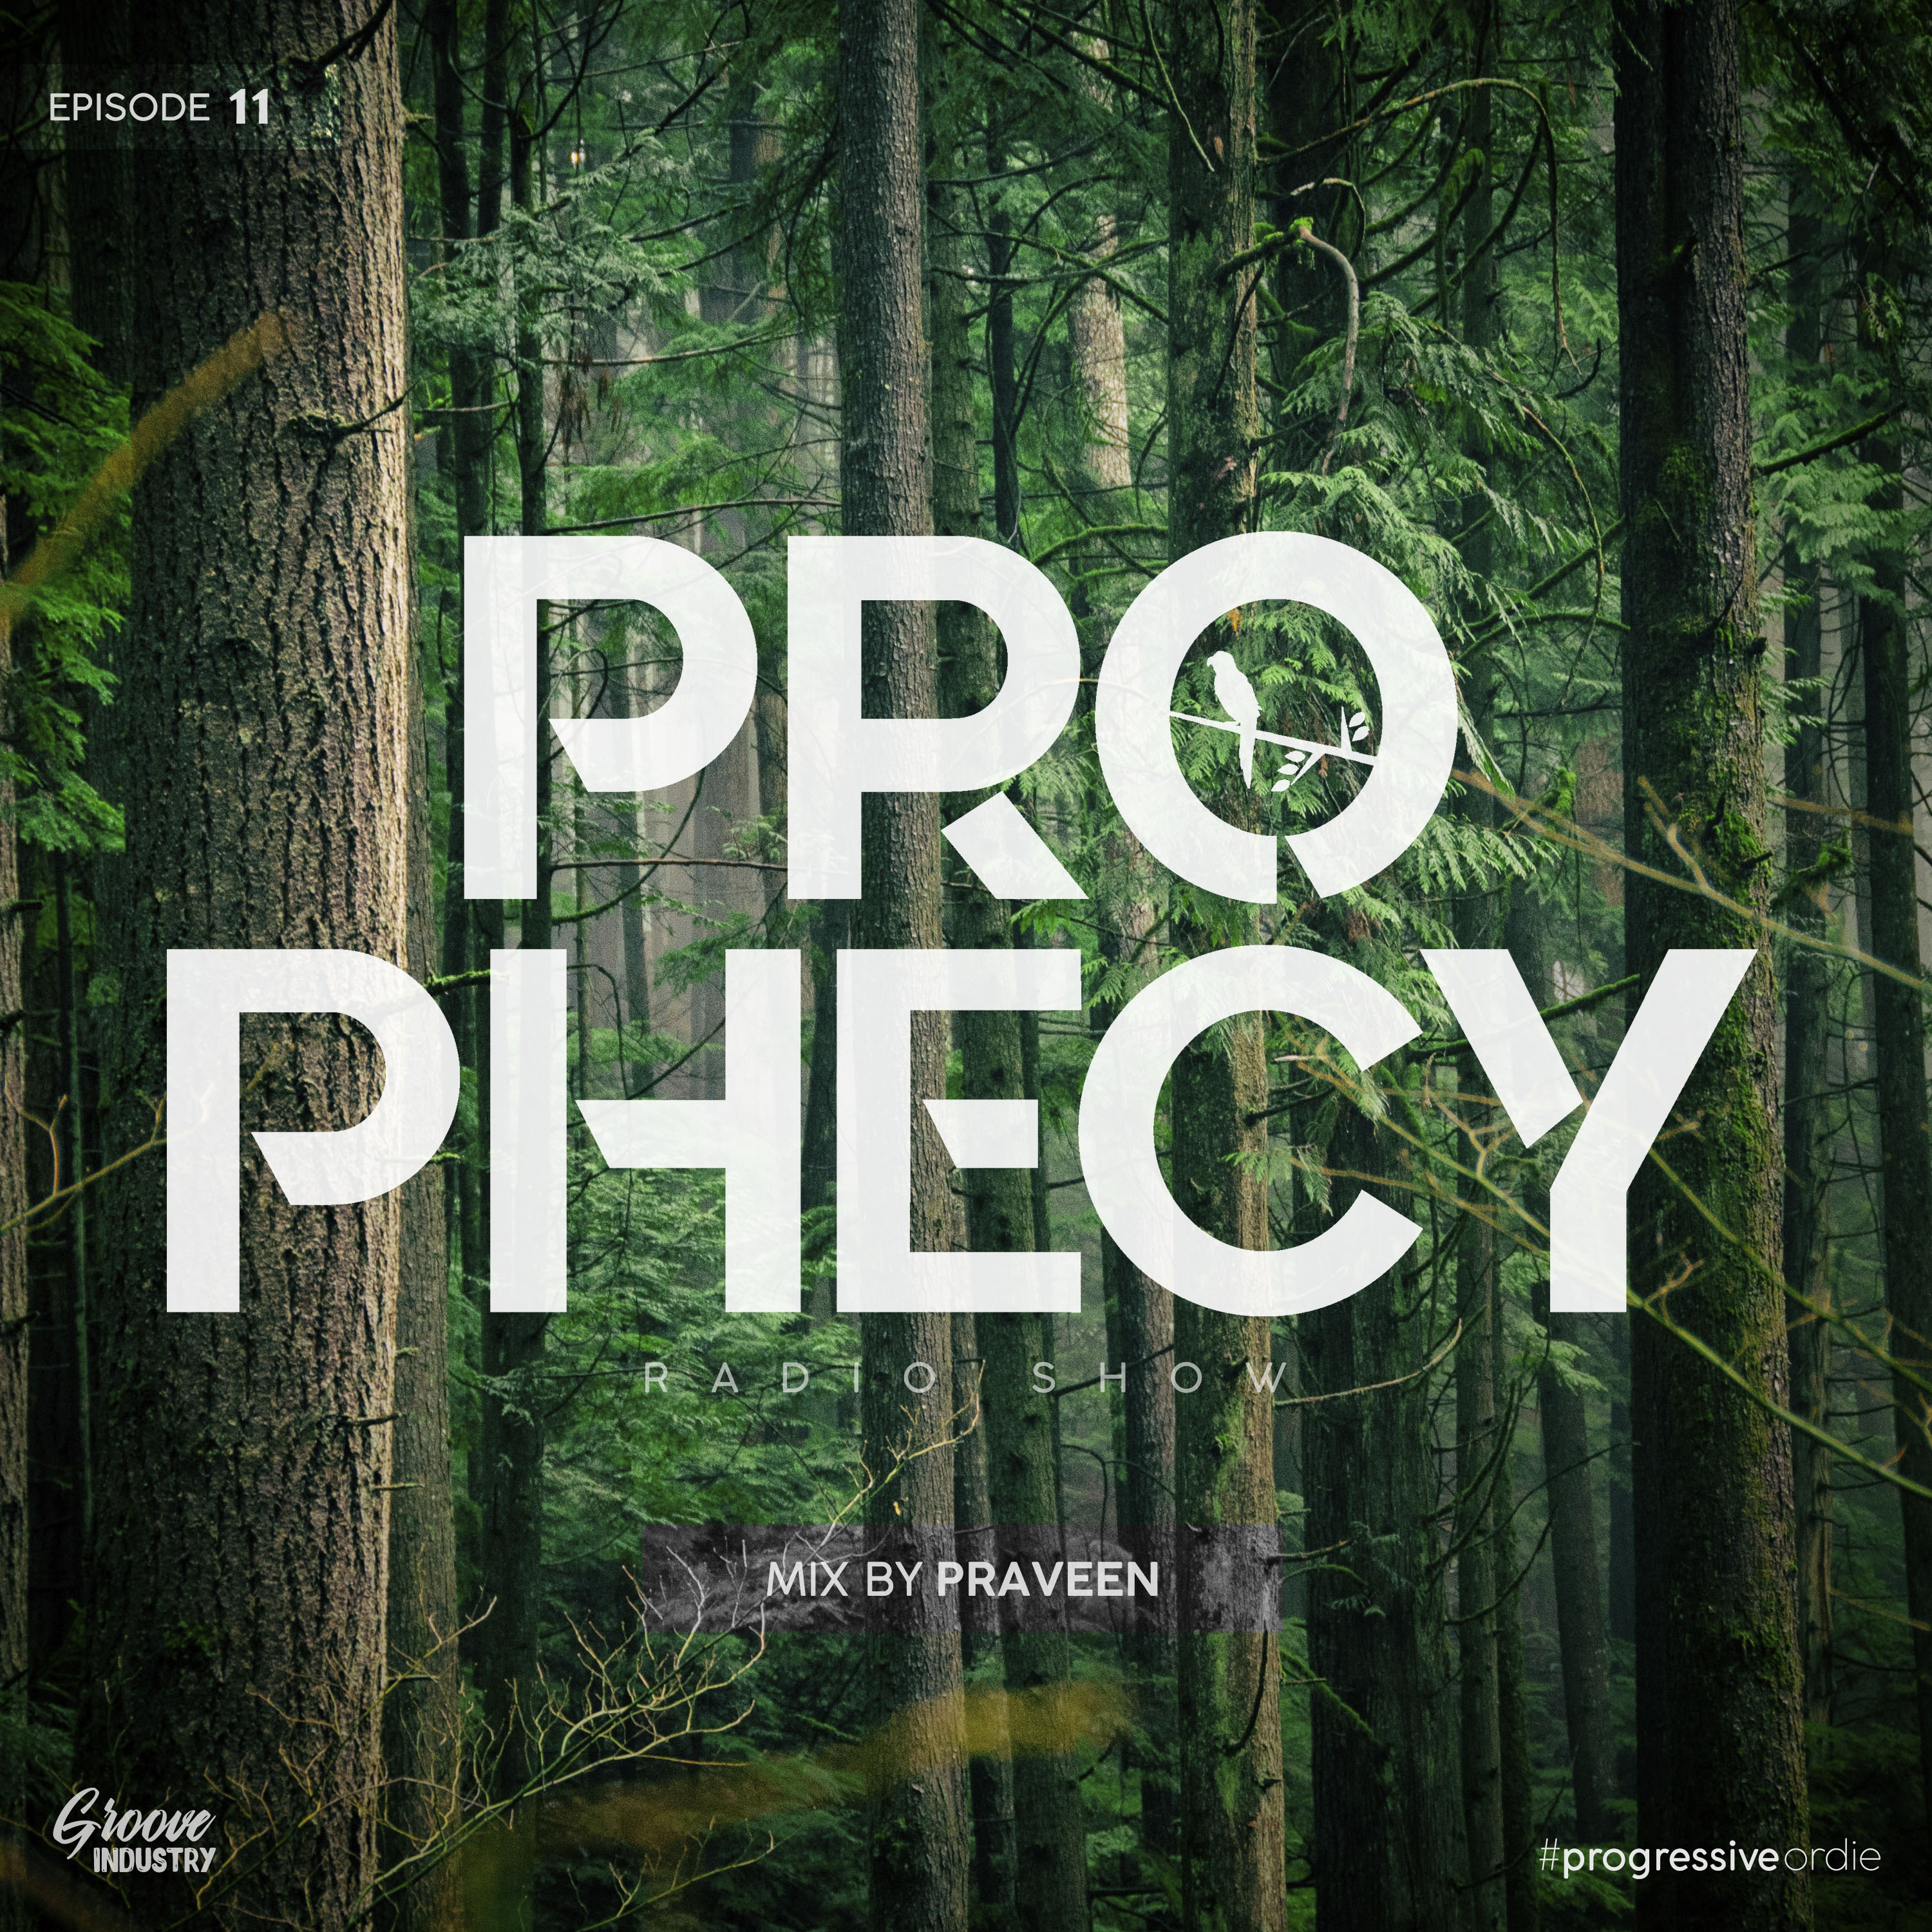 PROPHECY :: Prophecy Radio Show - Oct2019 - EP 11 (aired on October 18th, 2019) banner logo